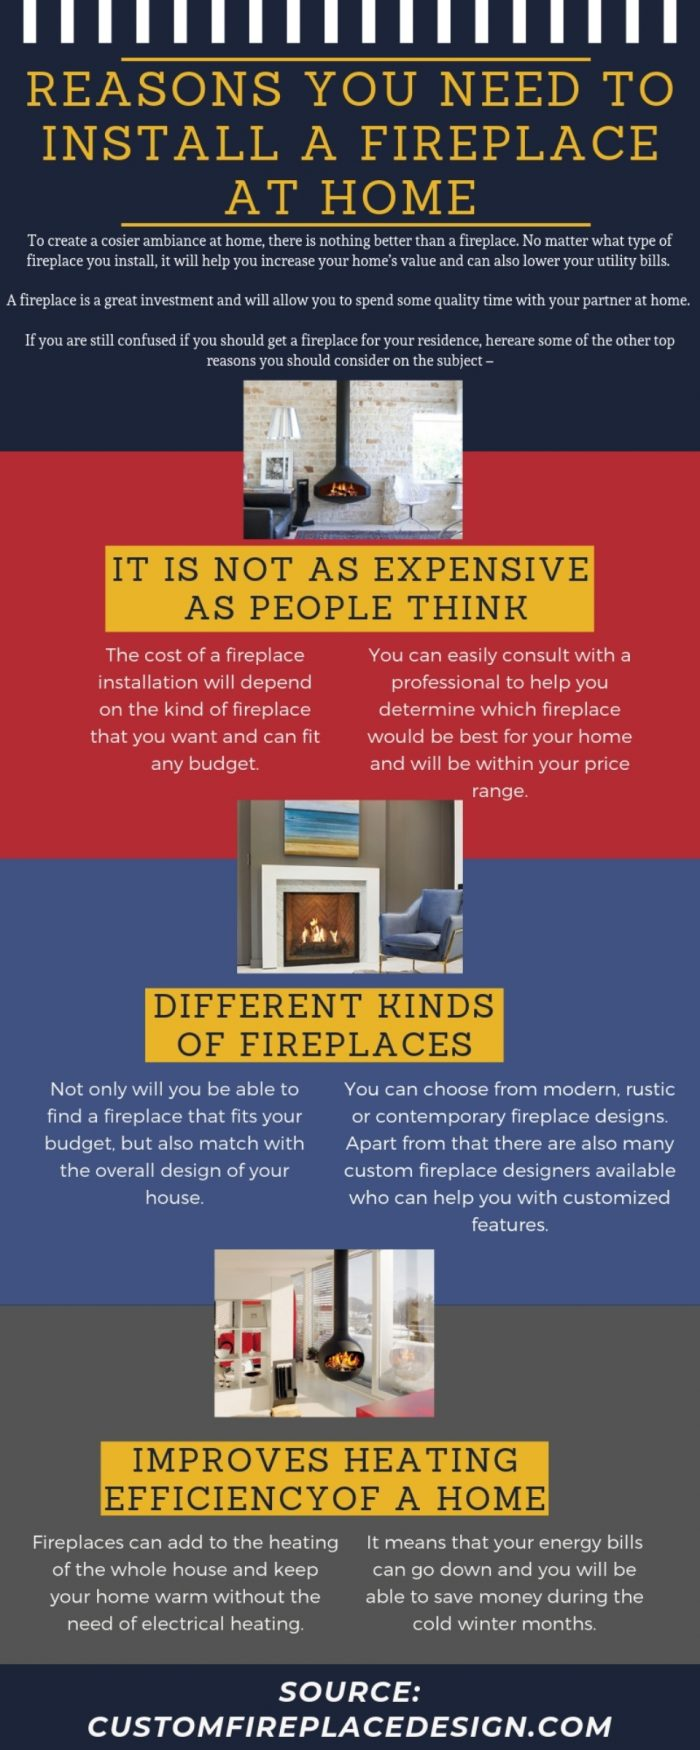 Fireplaces can add to the heating of the whole house and keep your home warm